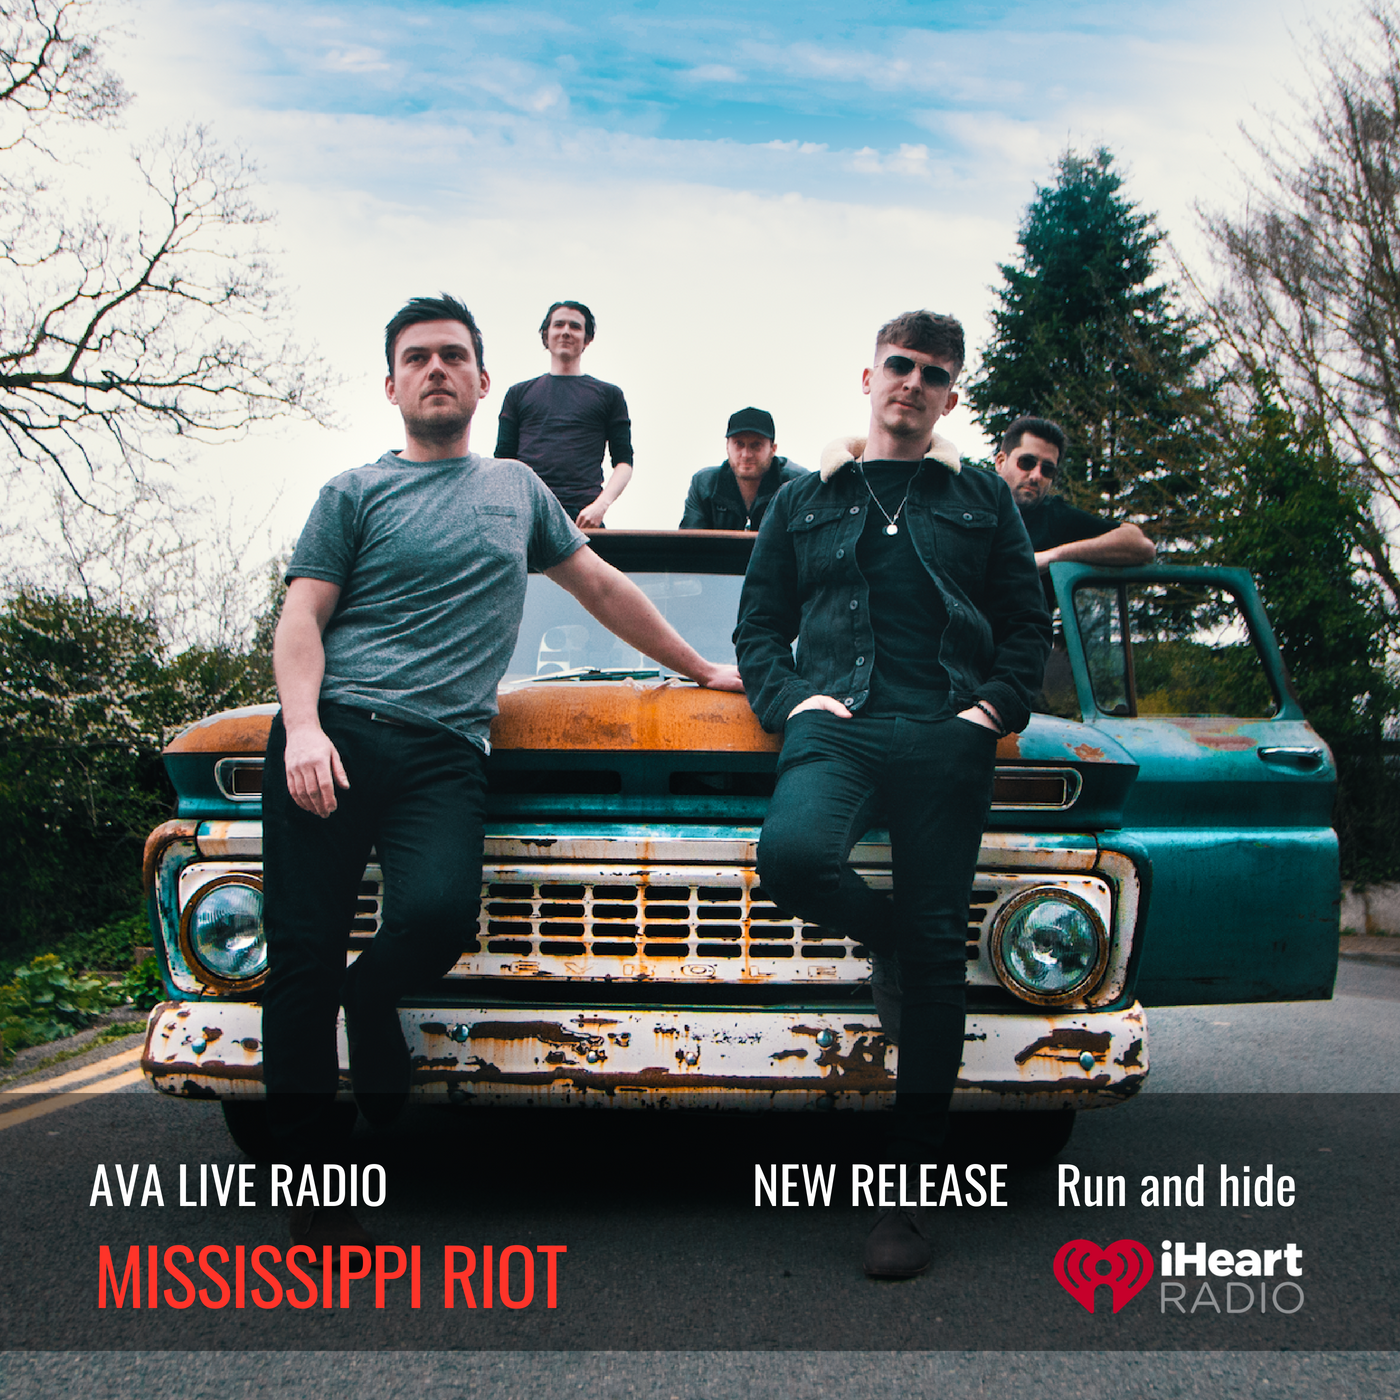 Behind the Music with Mississippi Riot on Run and hide